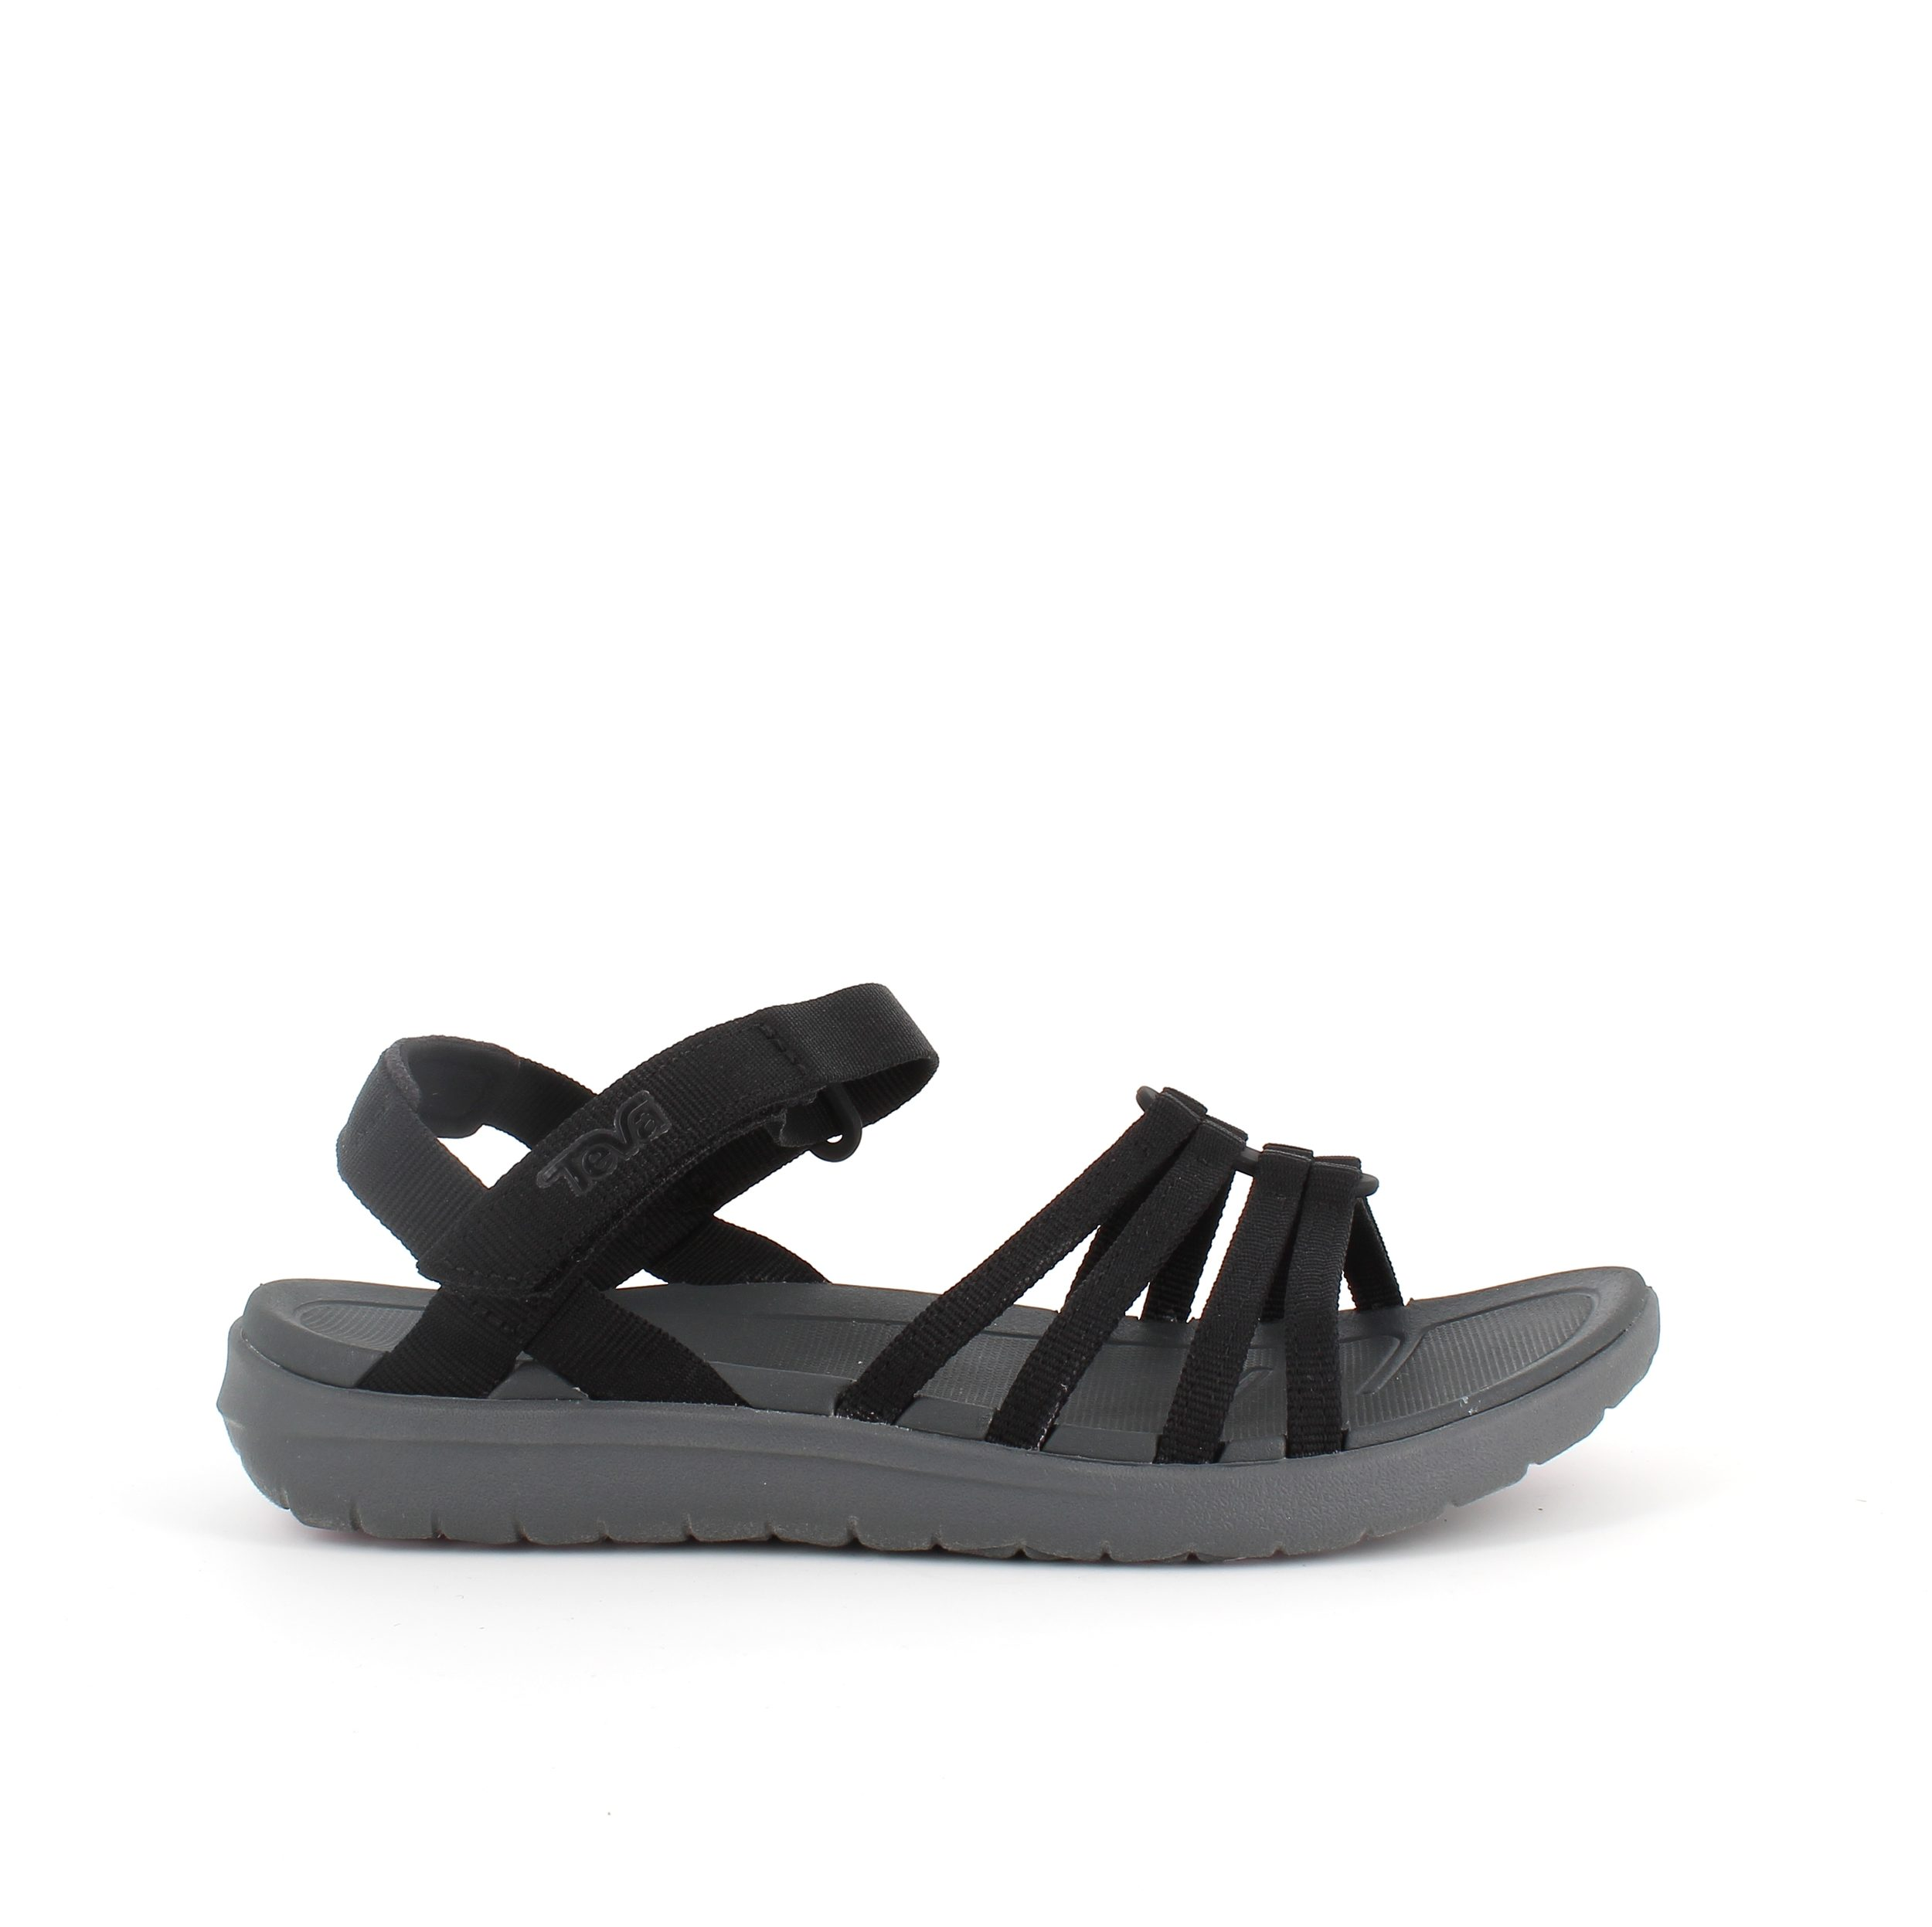 Image of   Teva Sanborn sort sandal - 38